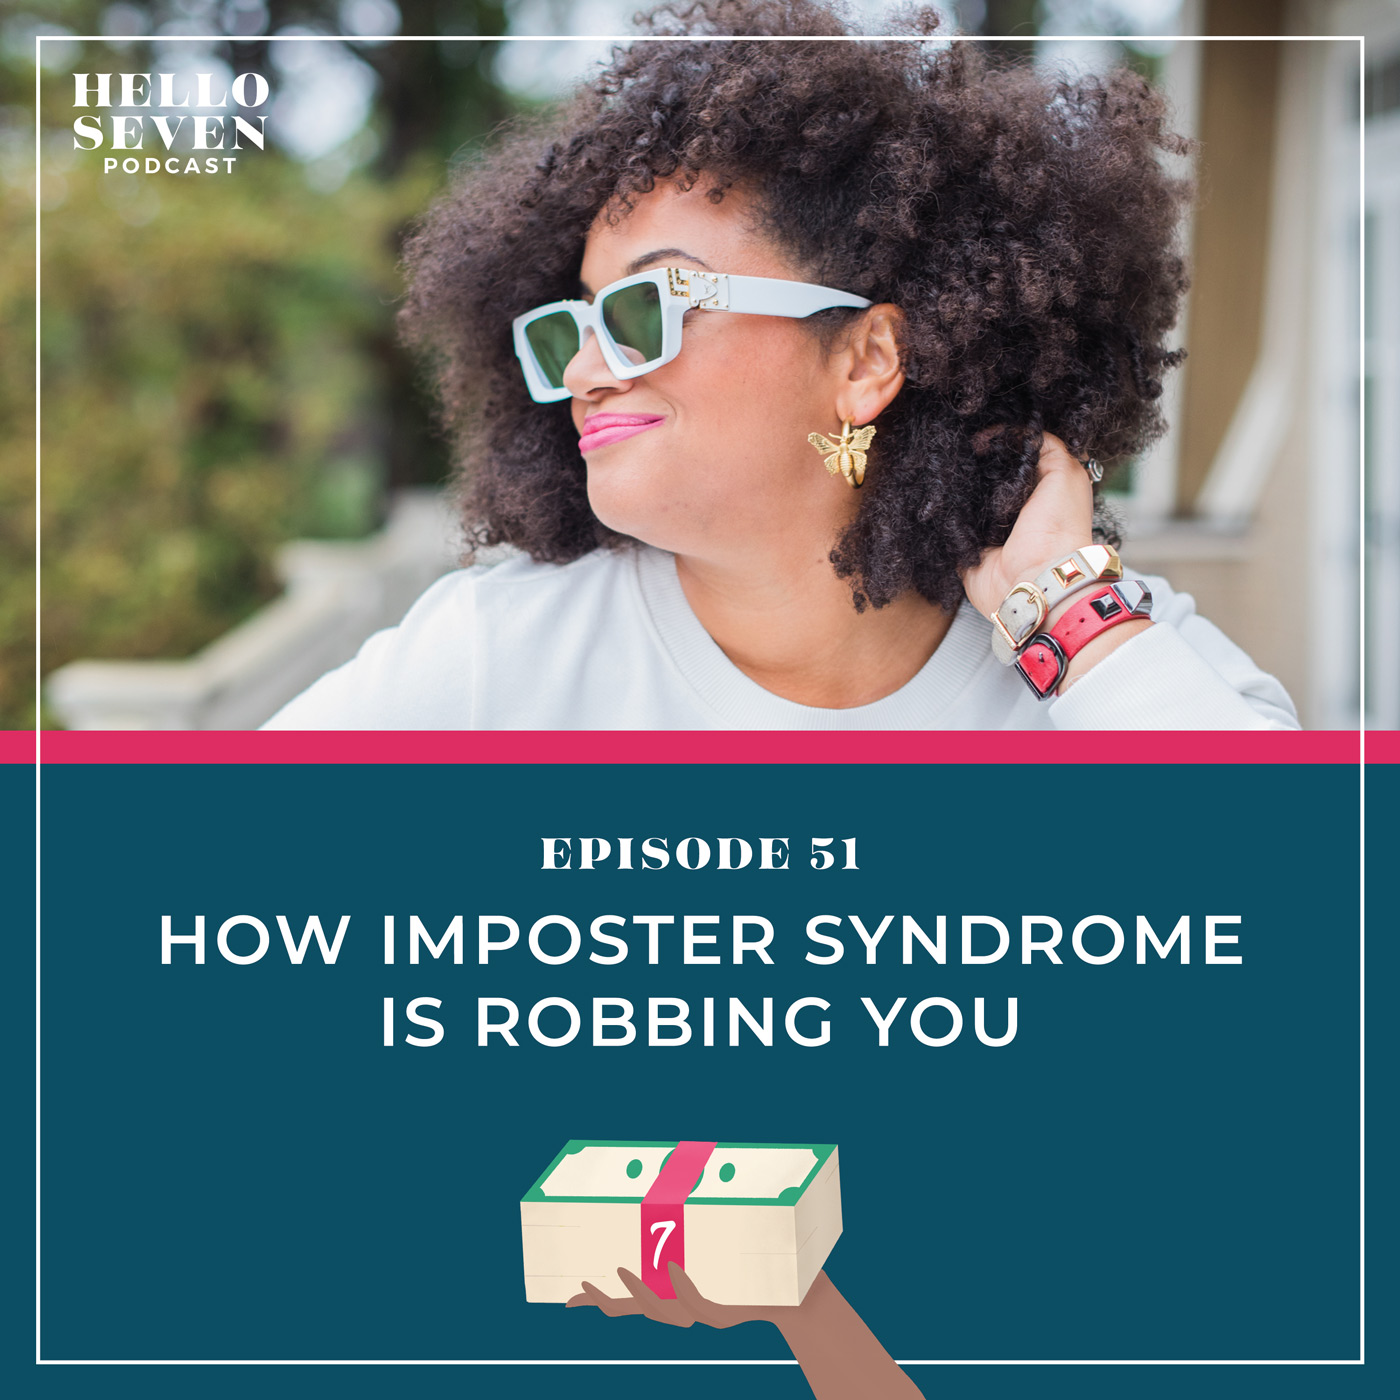 How Imposter Syndrome Is Robbing You